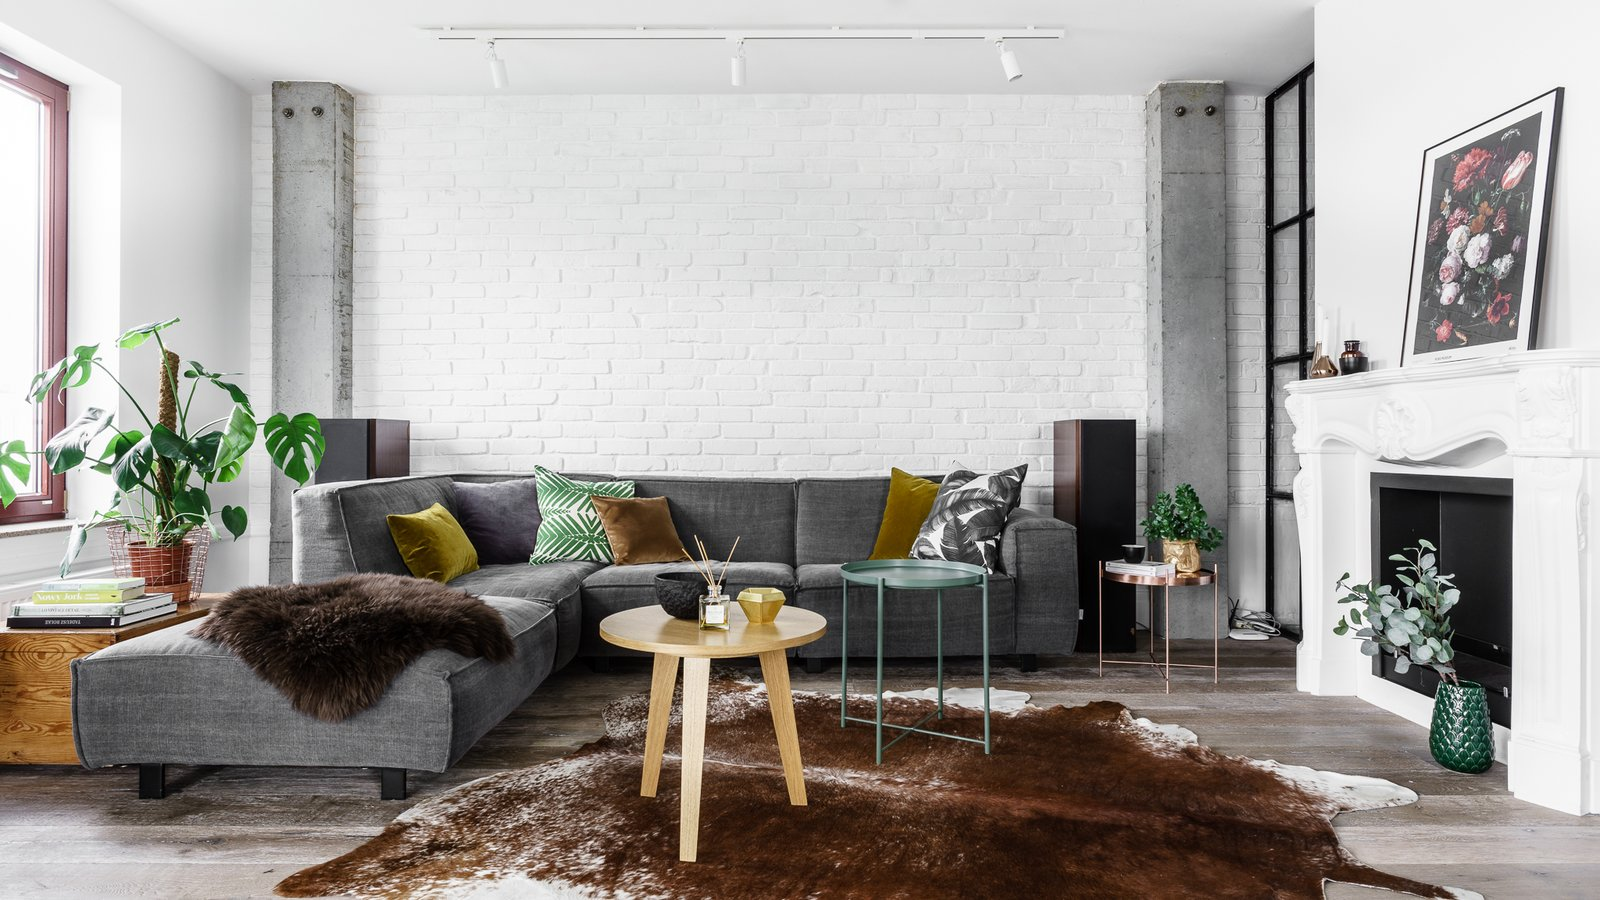 Tagged: Living Room, Sectional, Track Lighting, Medium Hardwood Floor, and Standard Layout Fireplace.  Loft in Poland by Lucyna Kołodziejska | INTERIORS FACTORY